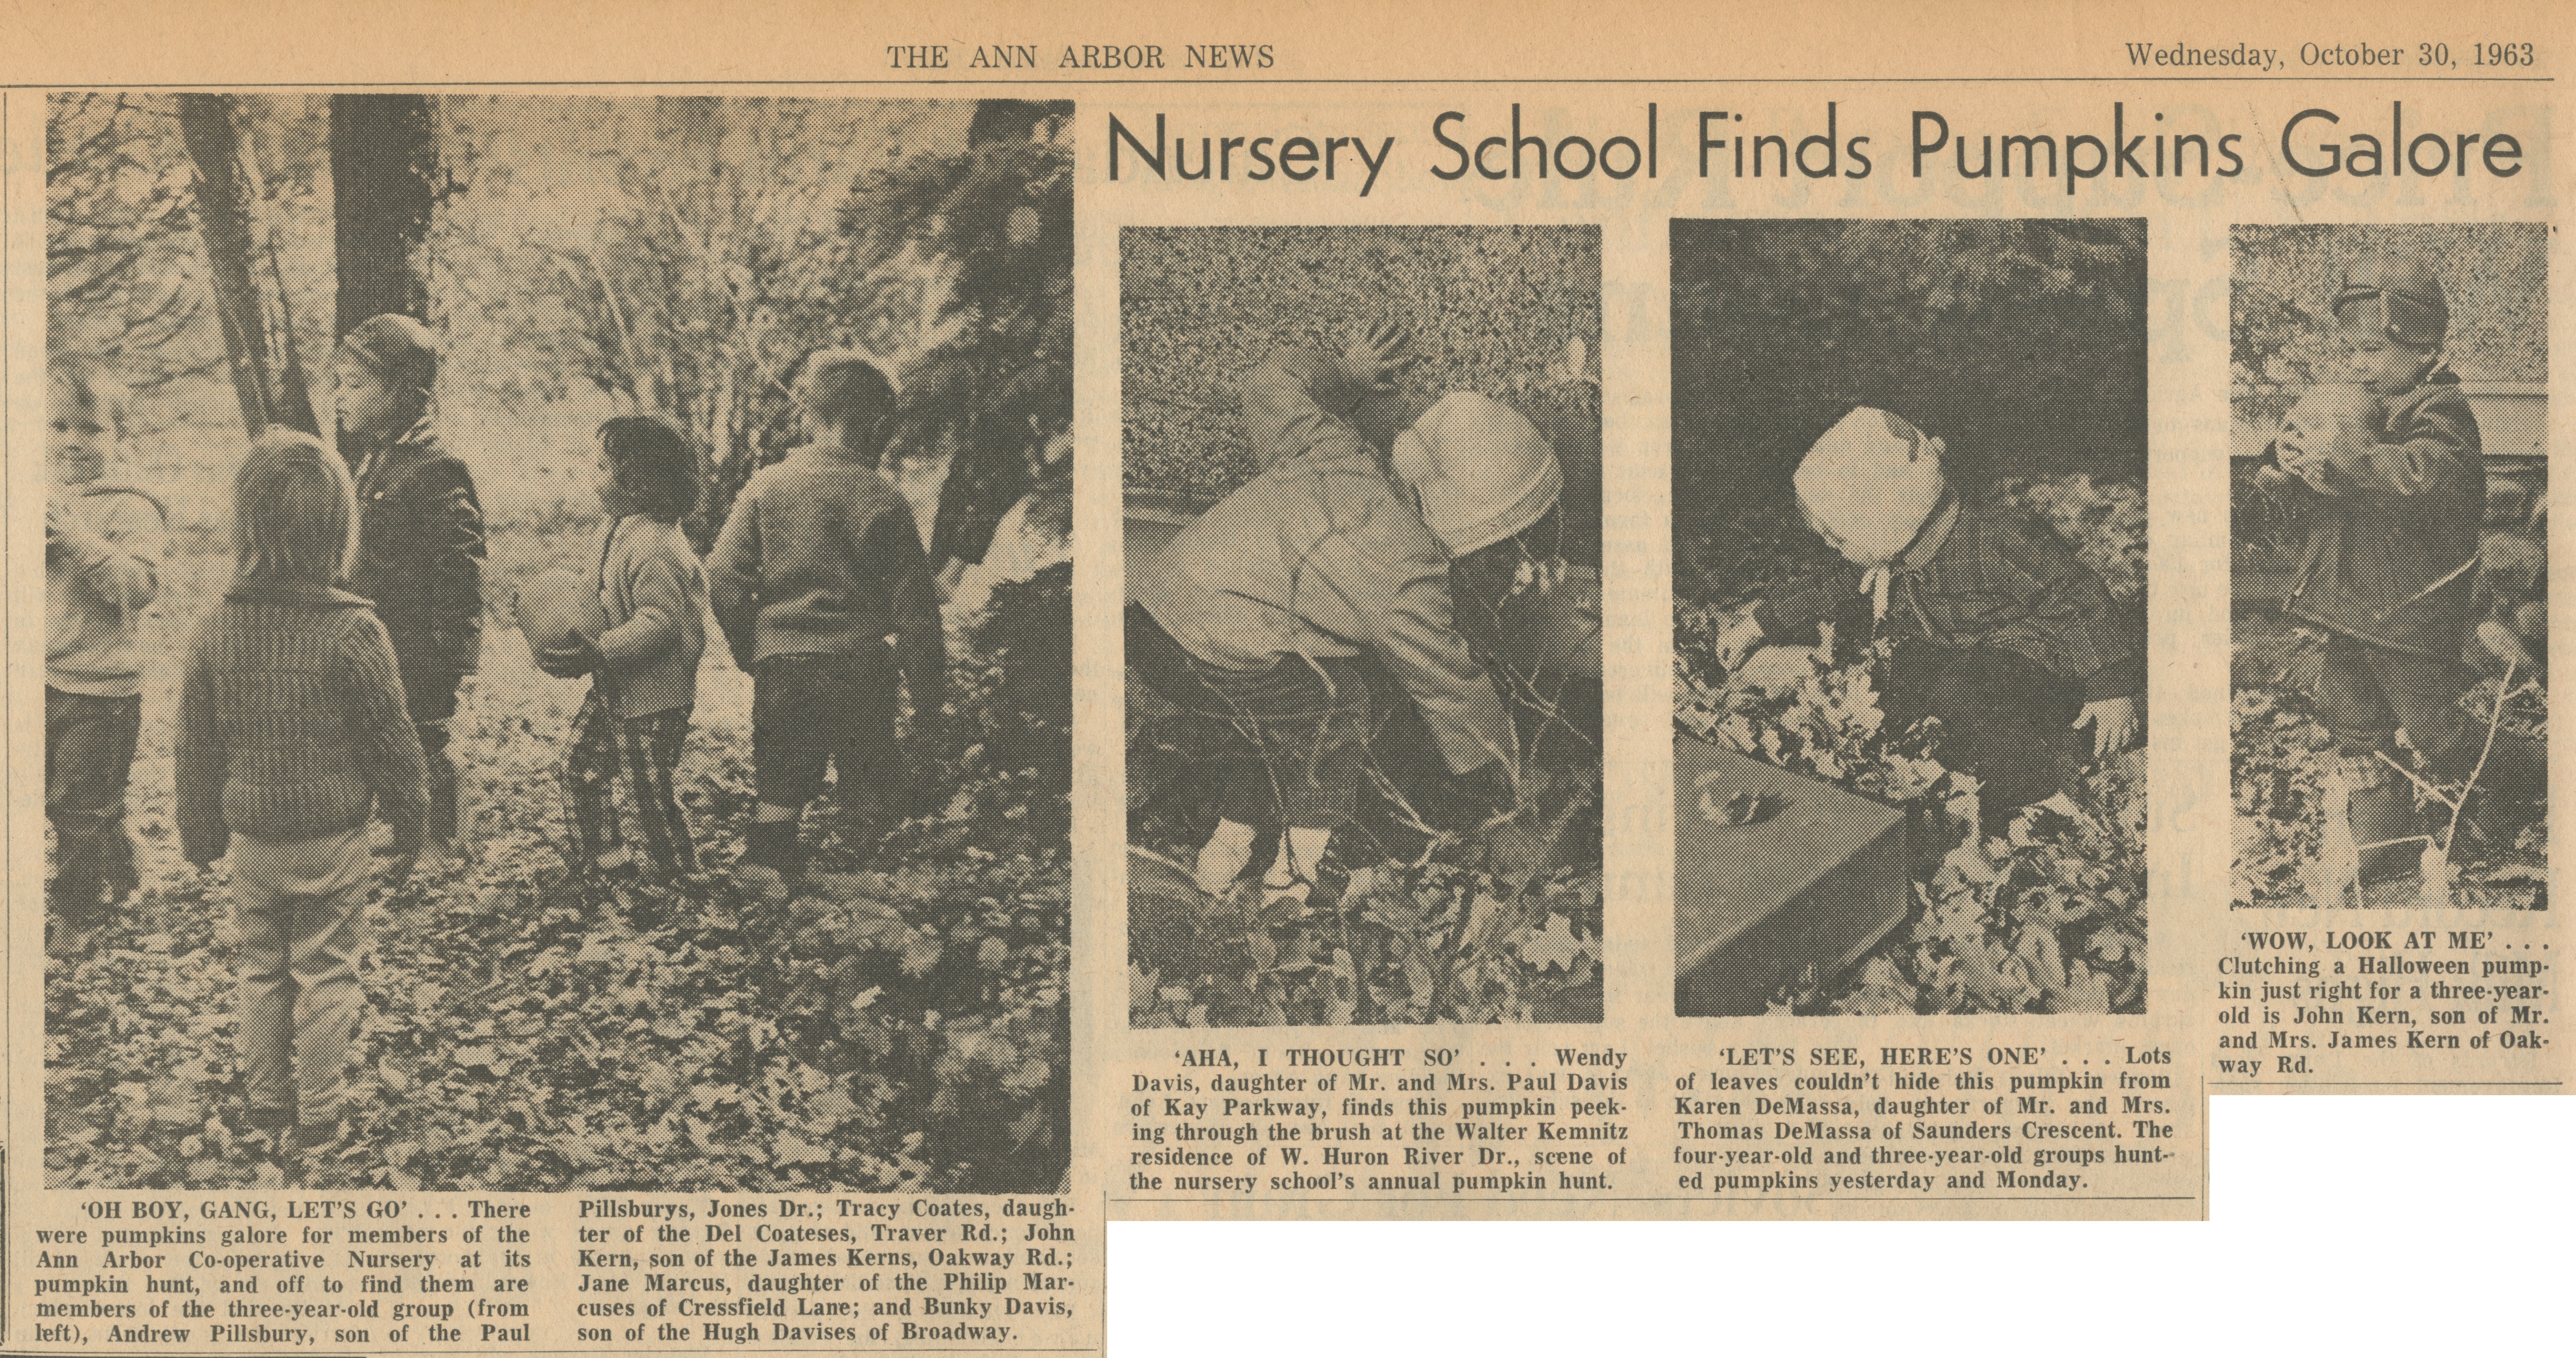 Nursery School Finds Pumpkins Galore image